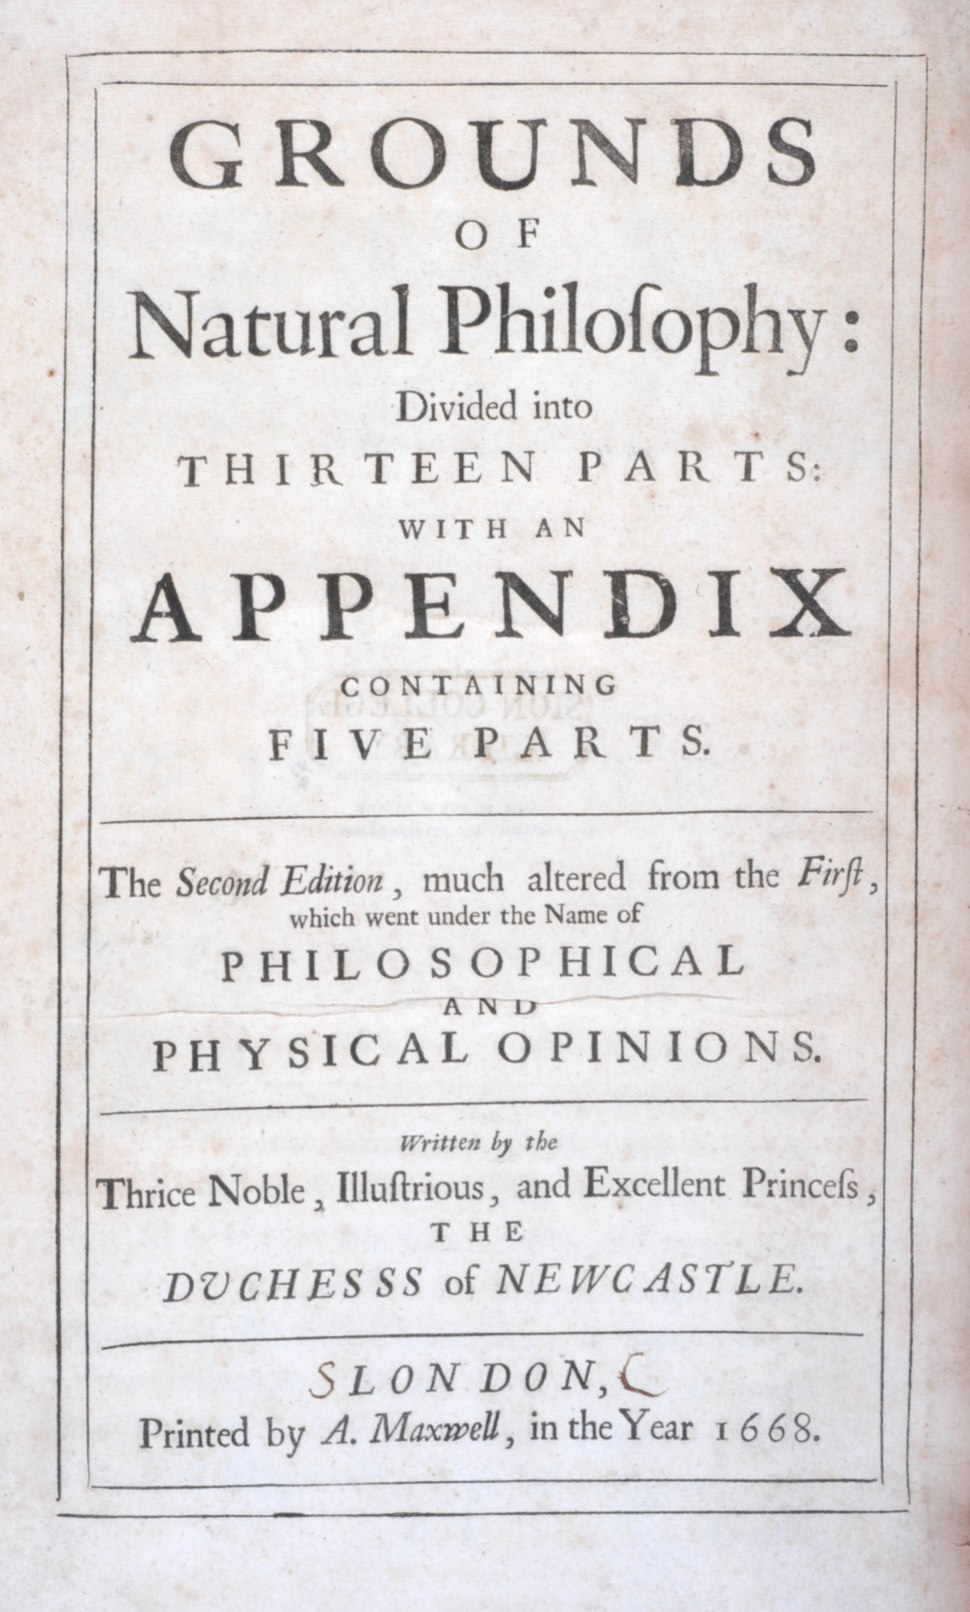 Margaret Newcastle 1668 Grounds of Natural Philosophy RGNb10347549.02.tp